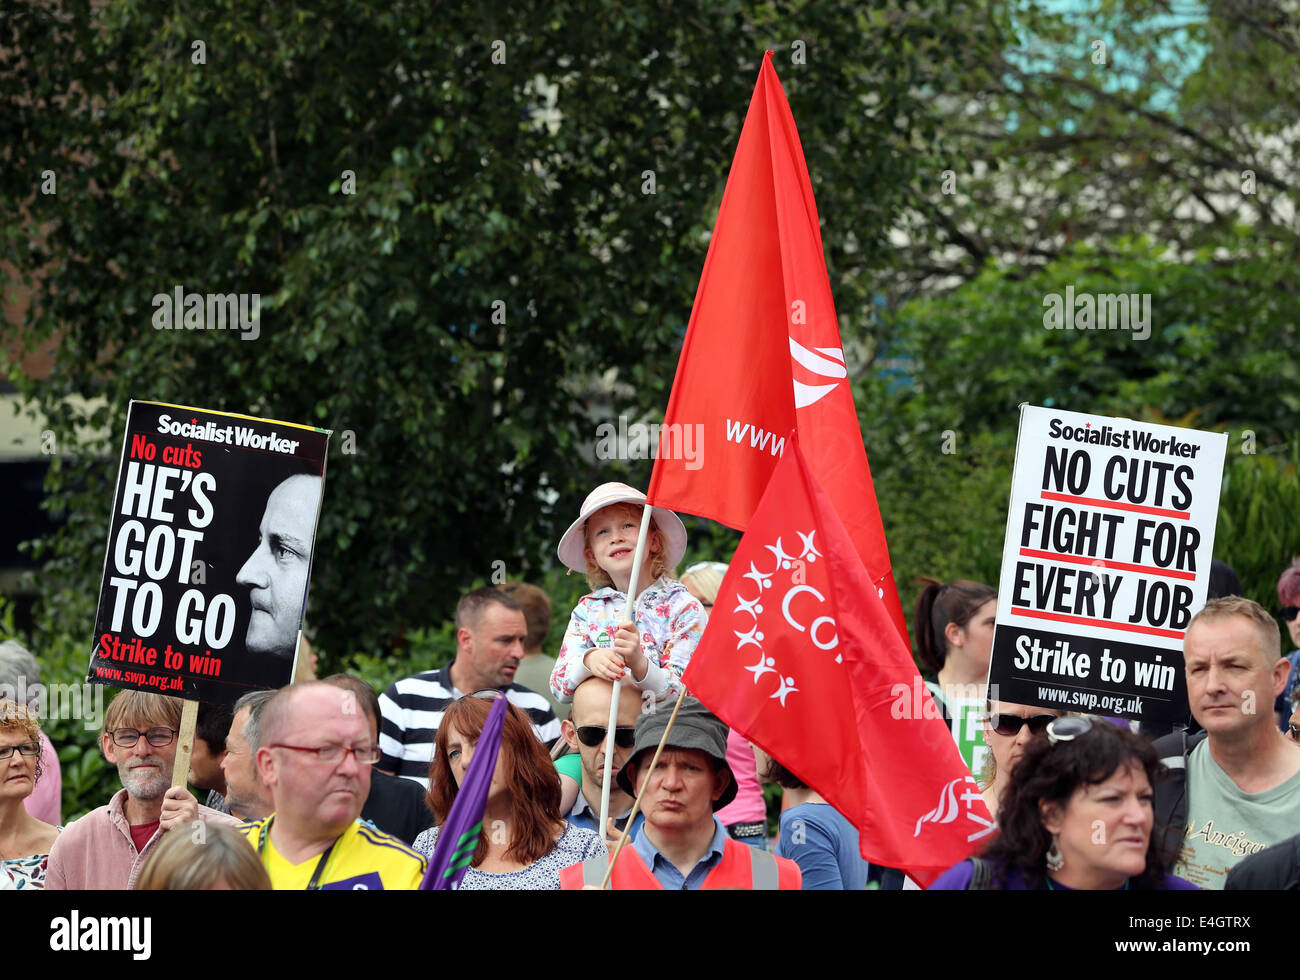 Swansea, UK. 10th July, 2014.  Pictured: A young girl holding a Unite Union flag among two Socialist Workers placards - Stock Image